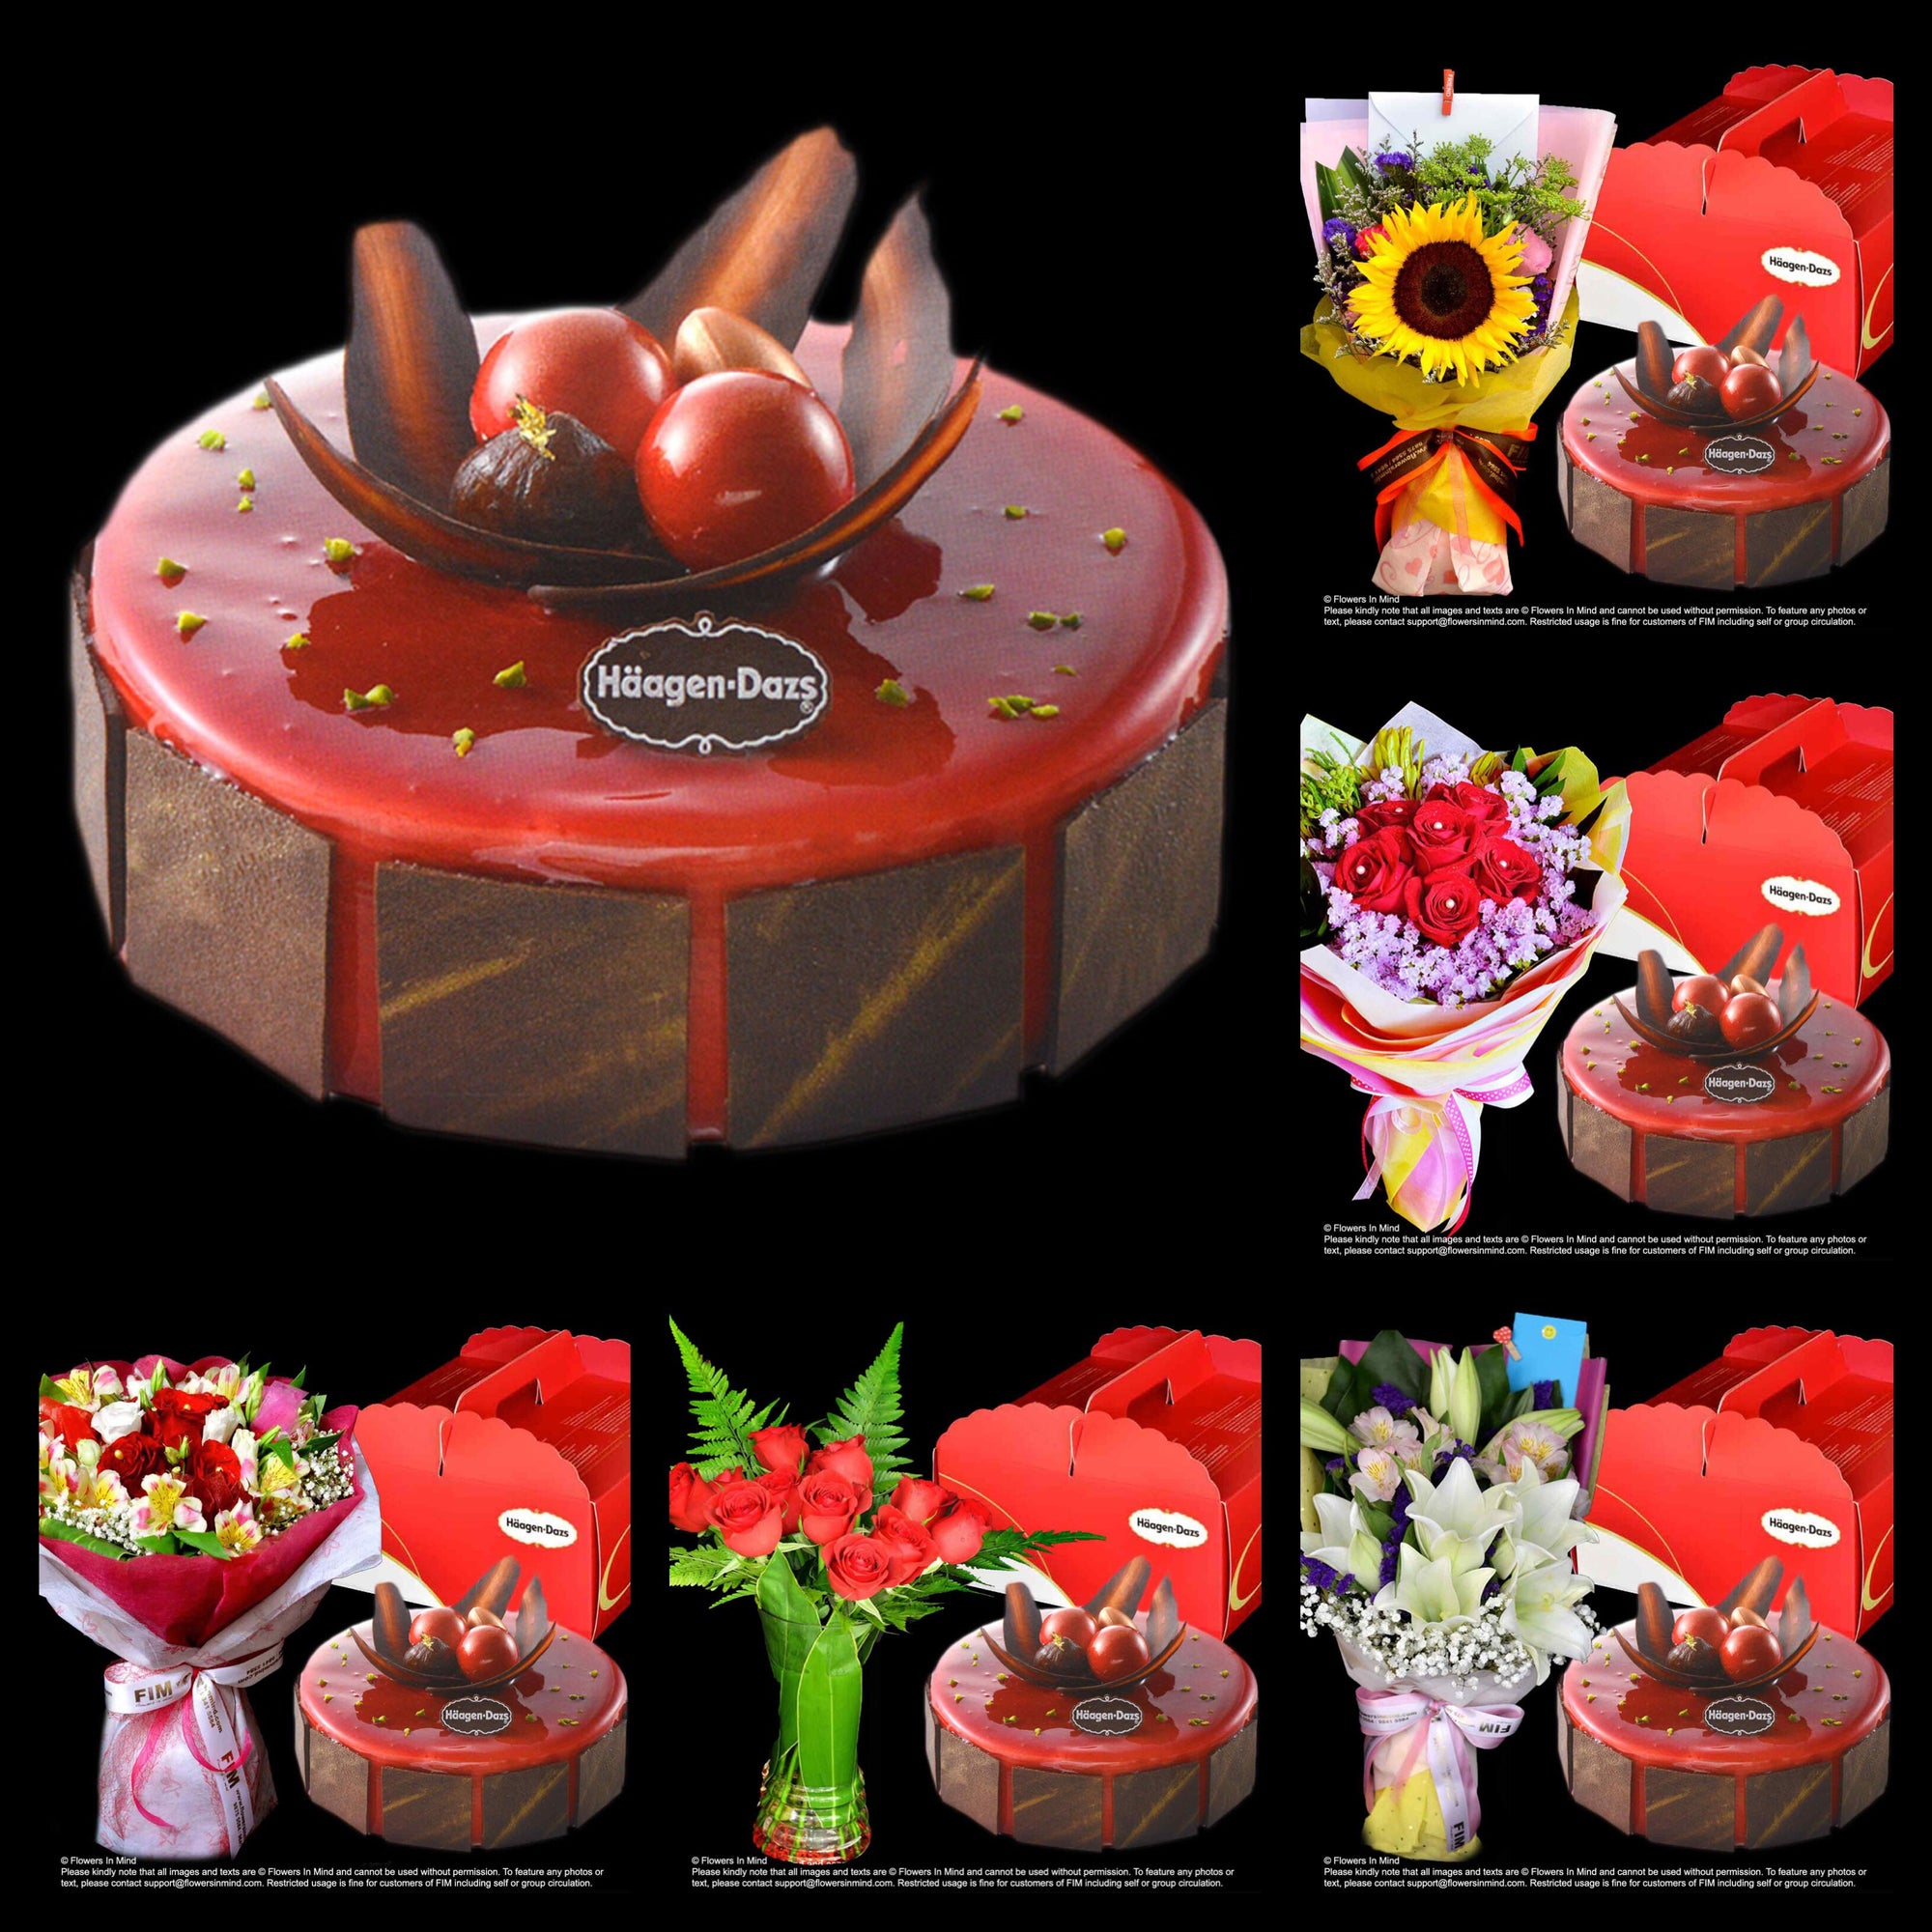 Marvelous Ice Cream Cake Love Moment From Haagen Dazs With Flowers Delivery Personalised Birthday Cards Akebfashionlily Jamesorg